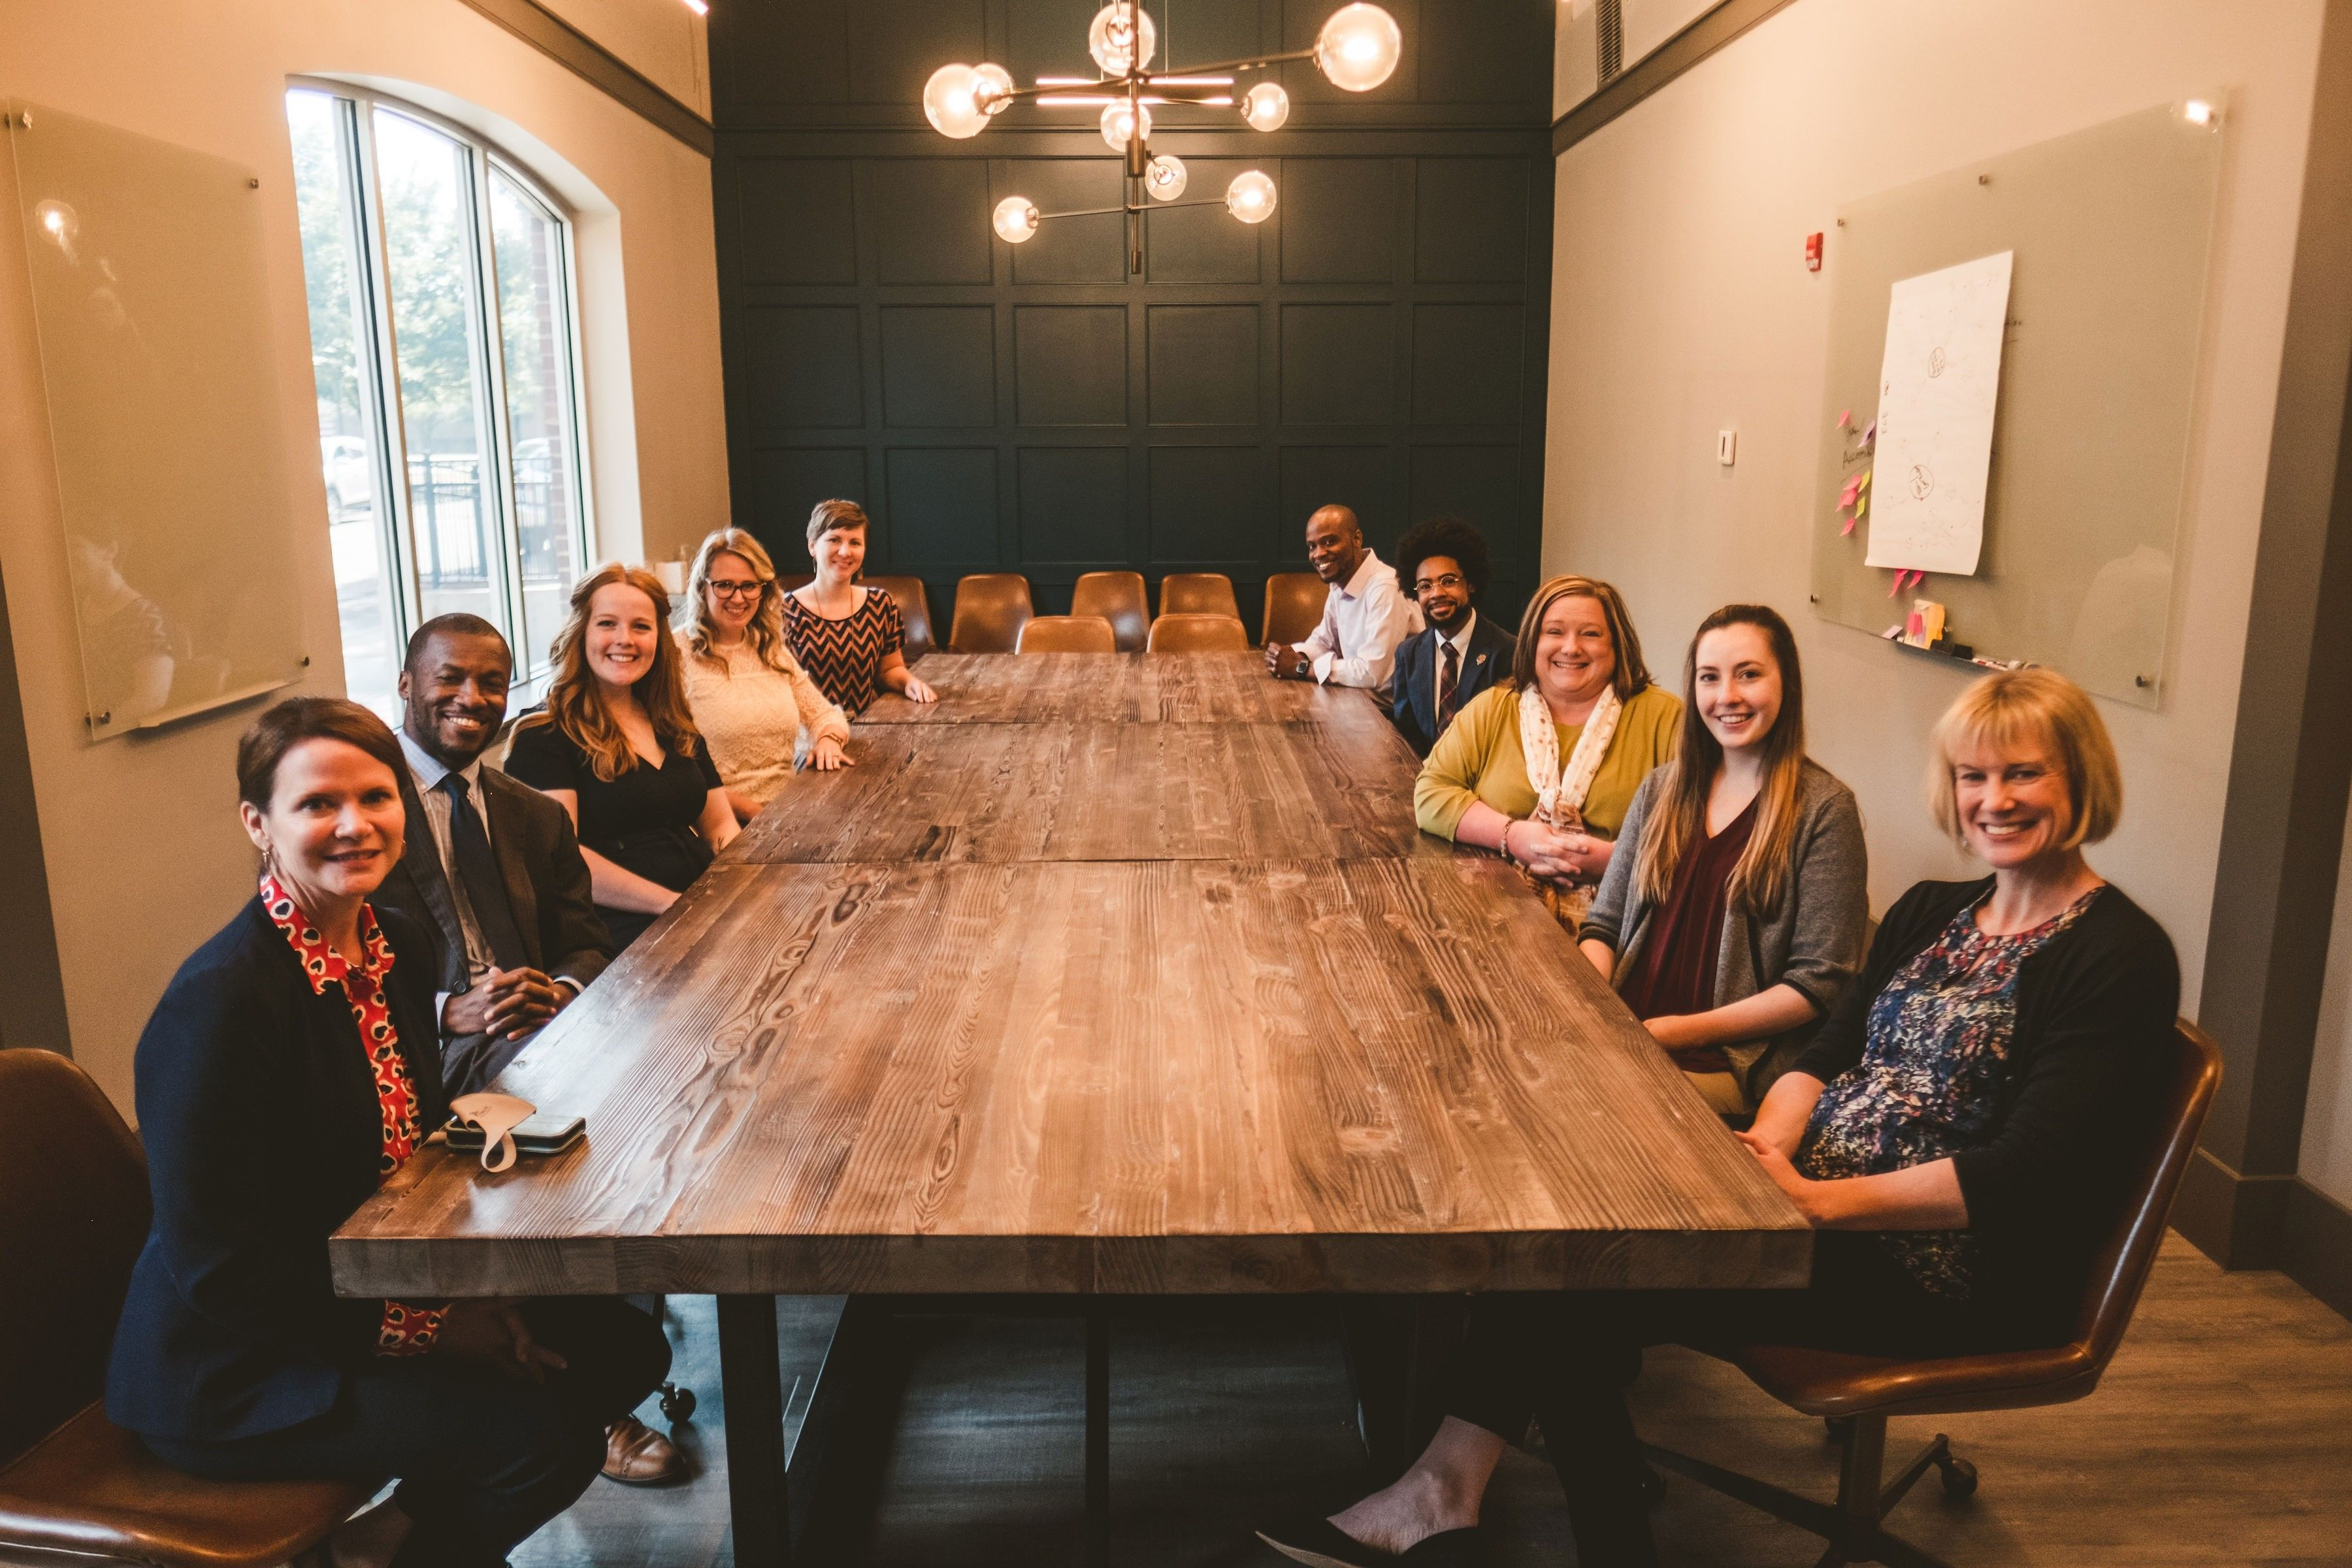 Wide Angle Shot of the CFGC staff in their conference room.